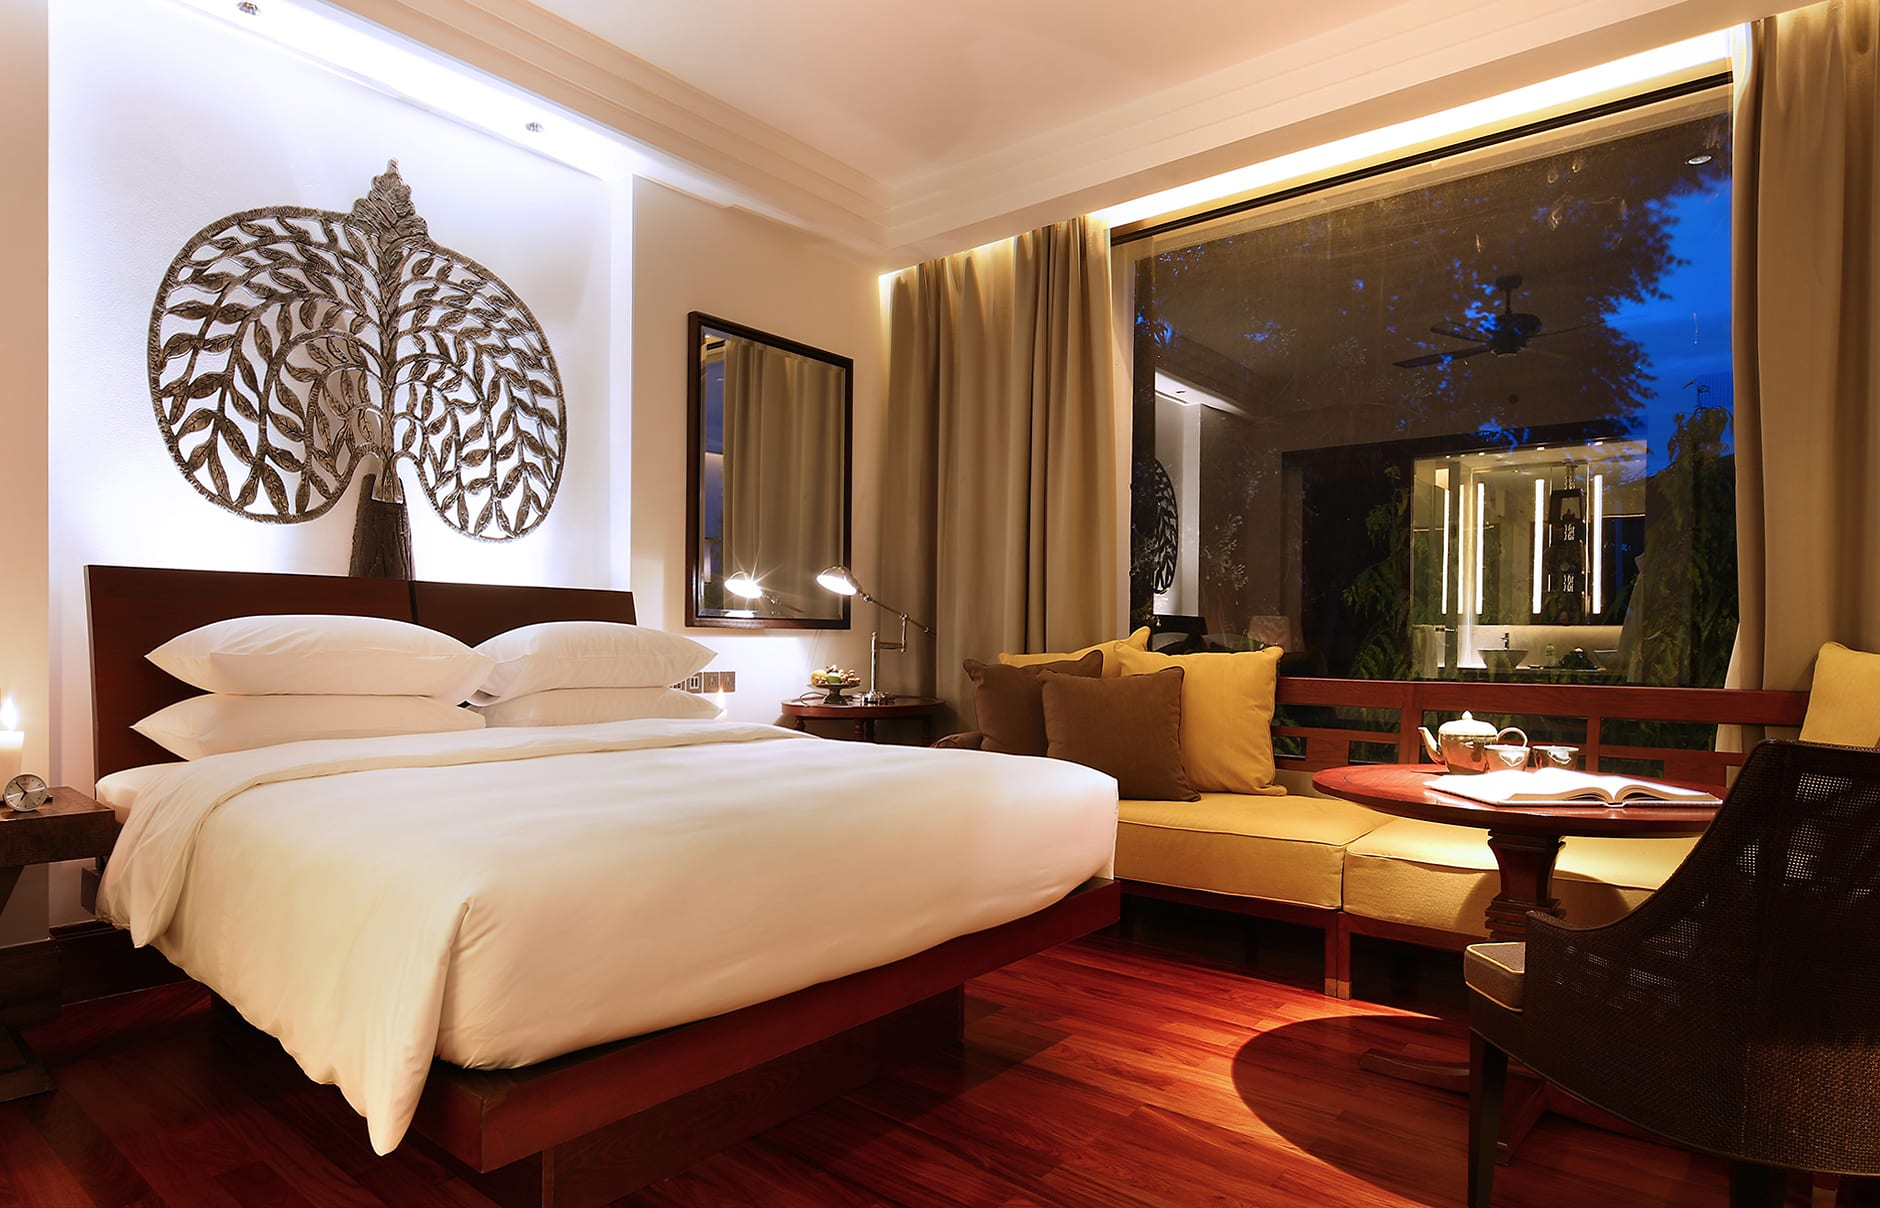 Park Hyatt Siem Reap, Cambodia. © Hyatt Corporation